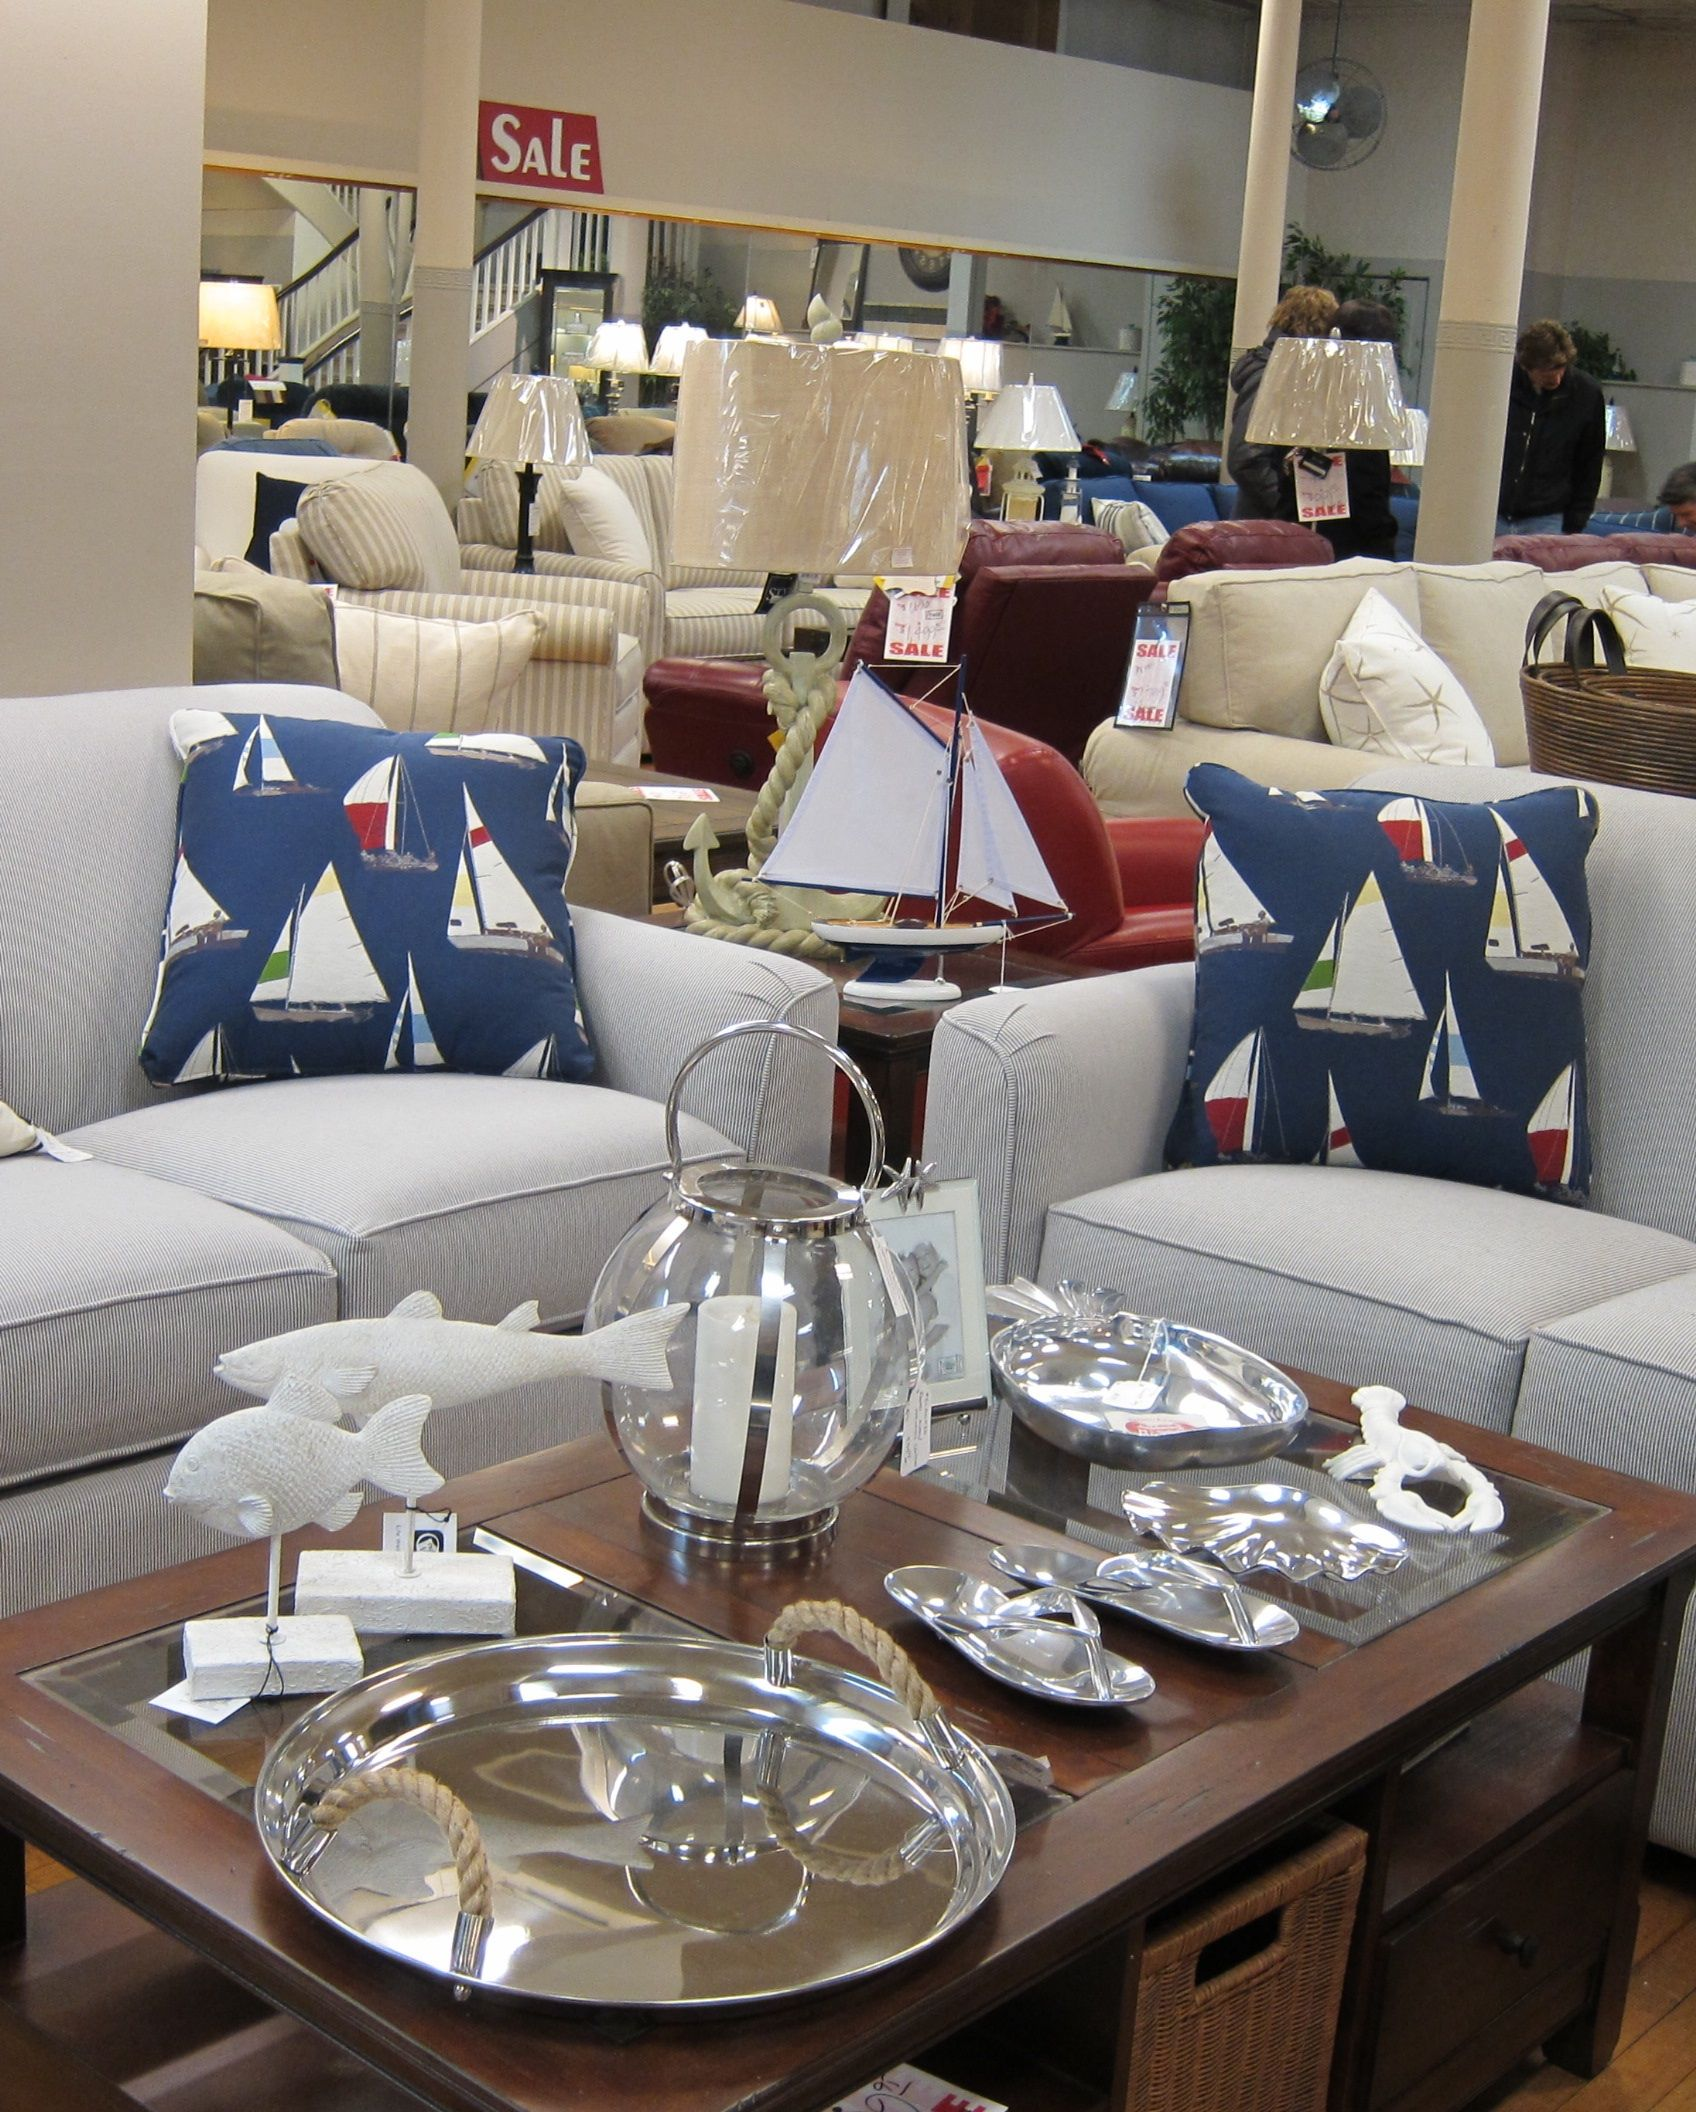 Furniture With Beach And Nautical Themes Can Be Found At Benu0027s Furniture On  Thames Street,